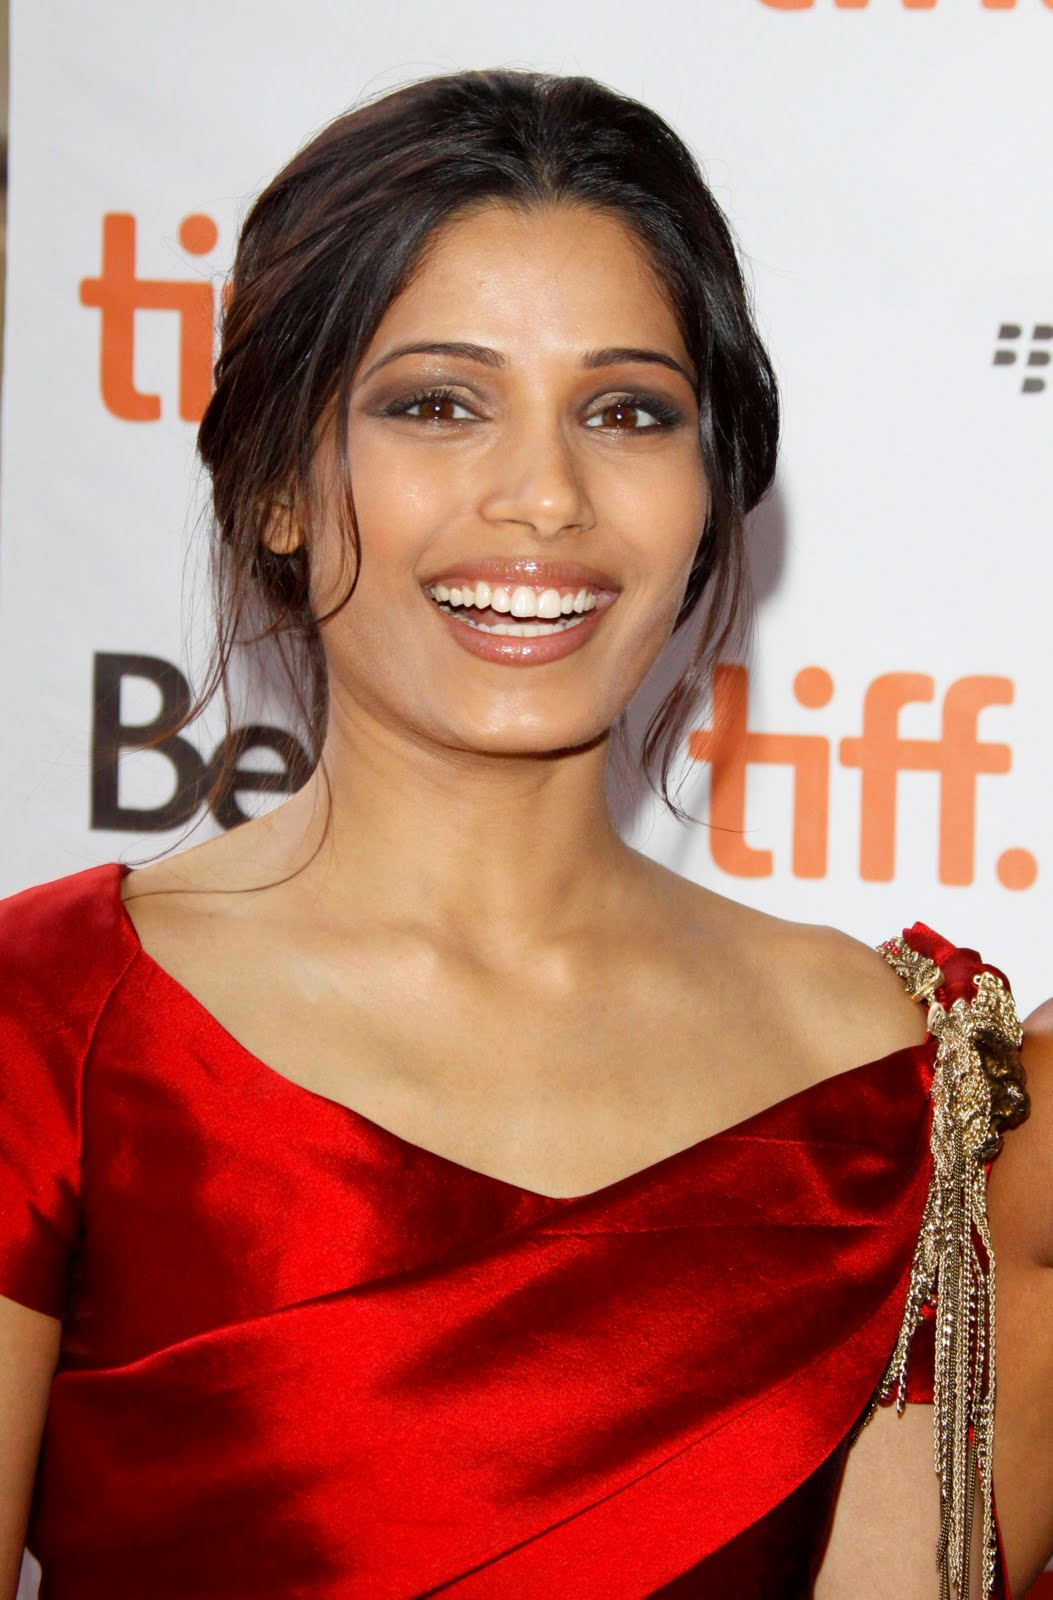 Wallpaper World: Freida pinto visit @ Miral premiere ...